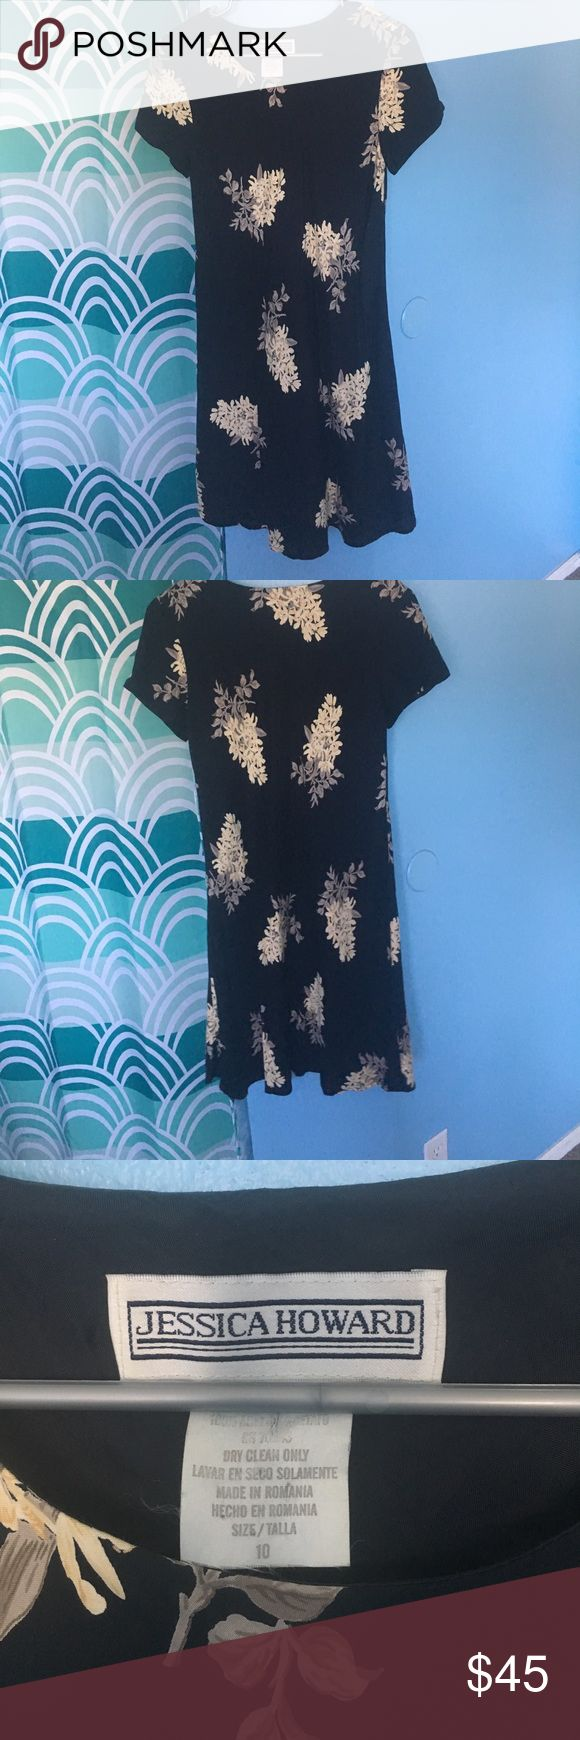 Vintage Jessica Howard dress Super cute vintage Jessica Howard dress. I've only worn it a few times but it is in great condition! Super cute flower designs. Great as a thrown on dress!size says 10 but I'm a small and it fits me nicely. Colors are black, cream and tan. Jessica Howard Dresses Midi